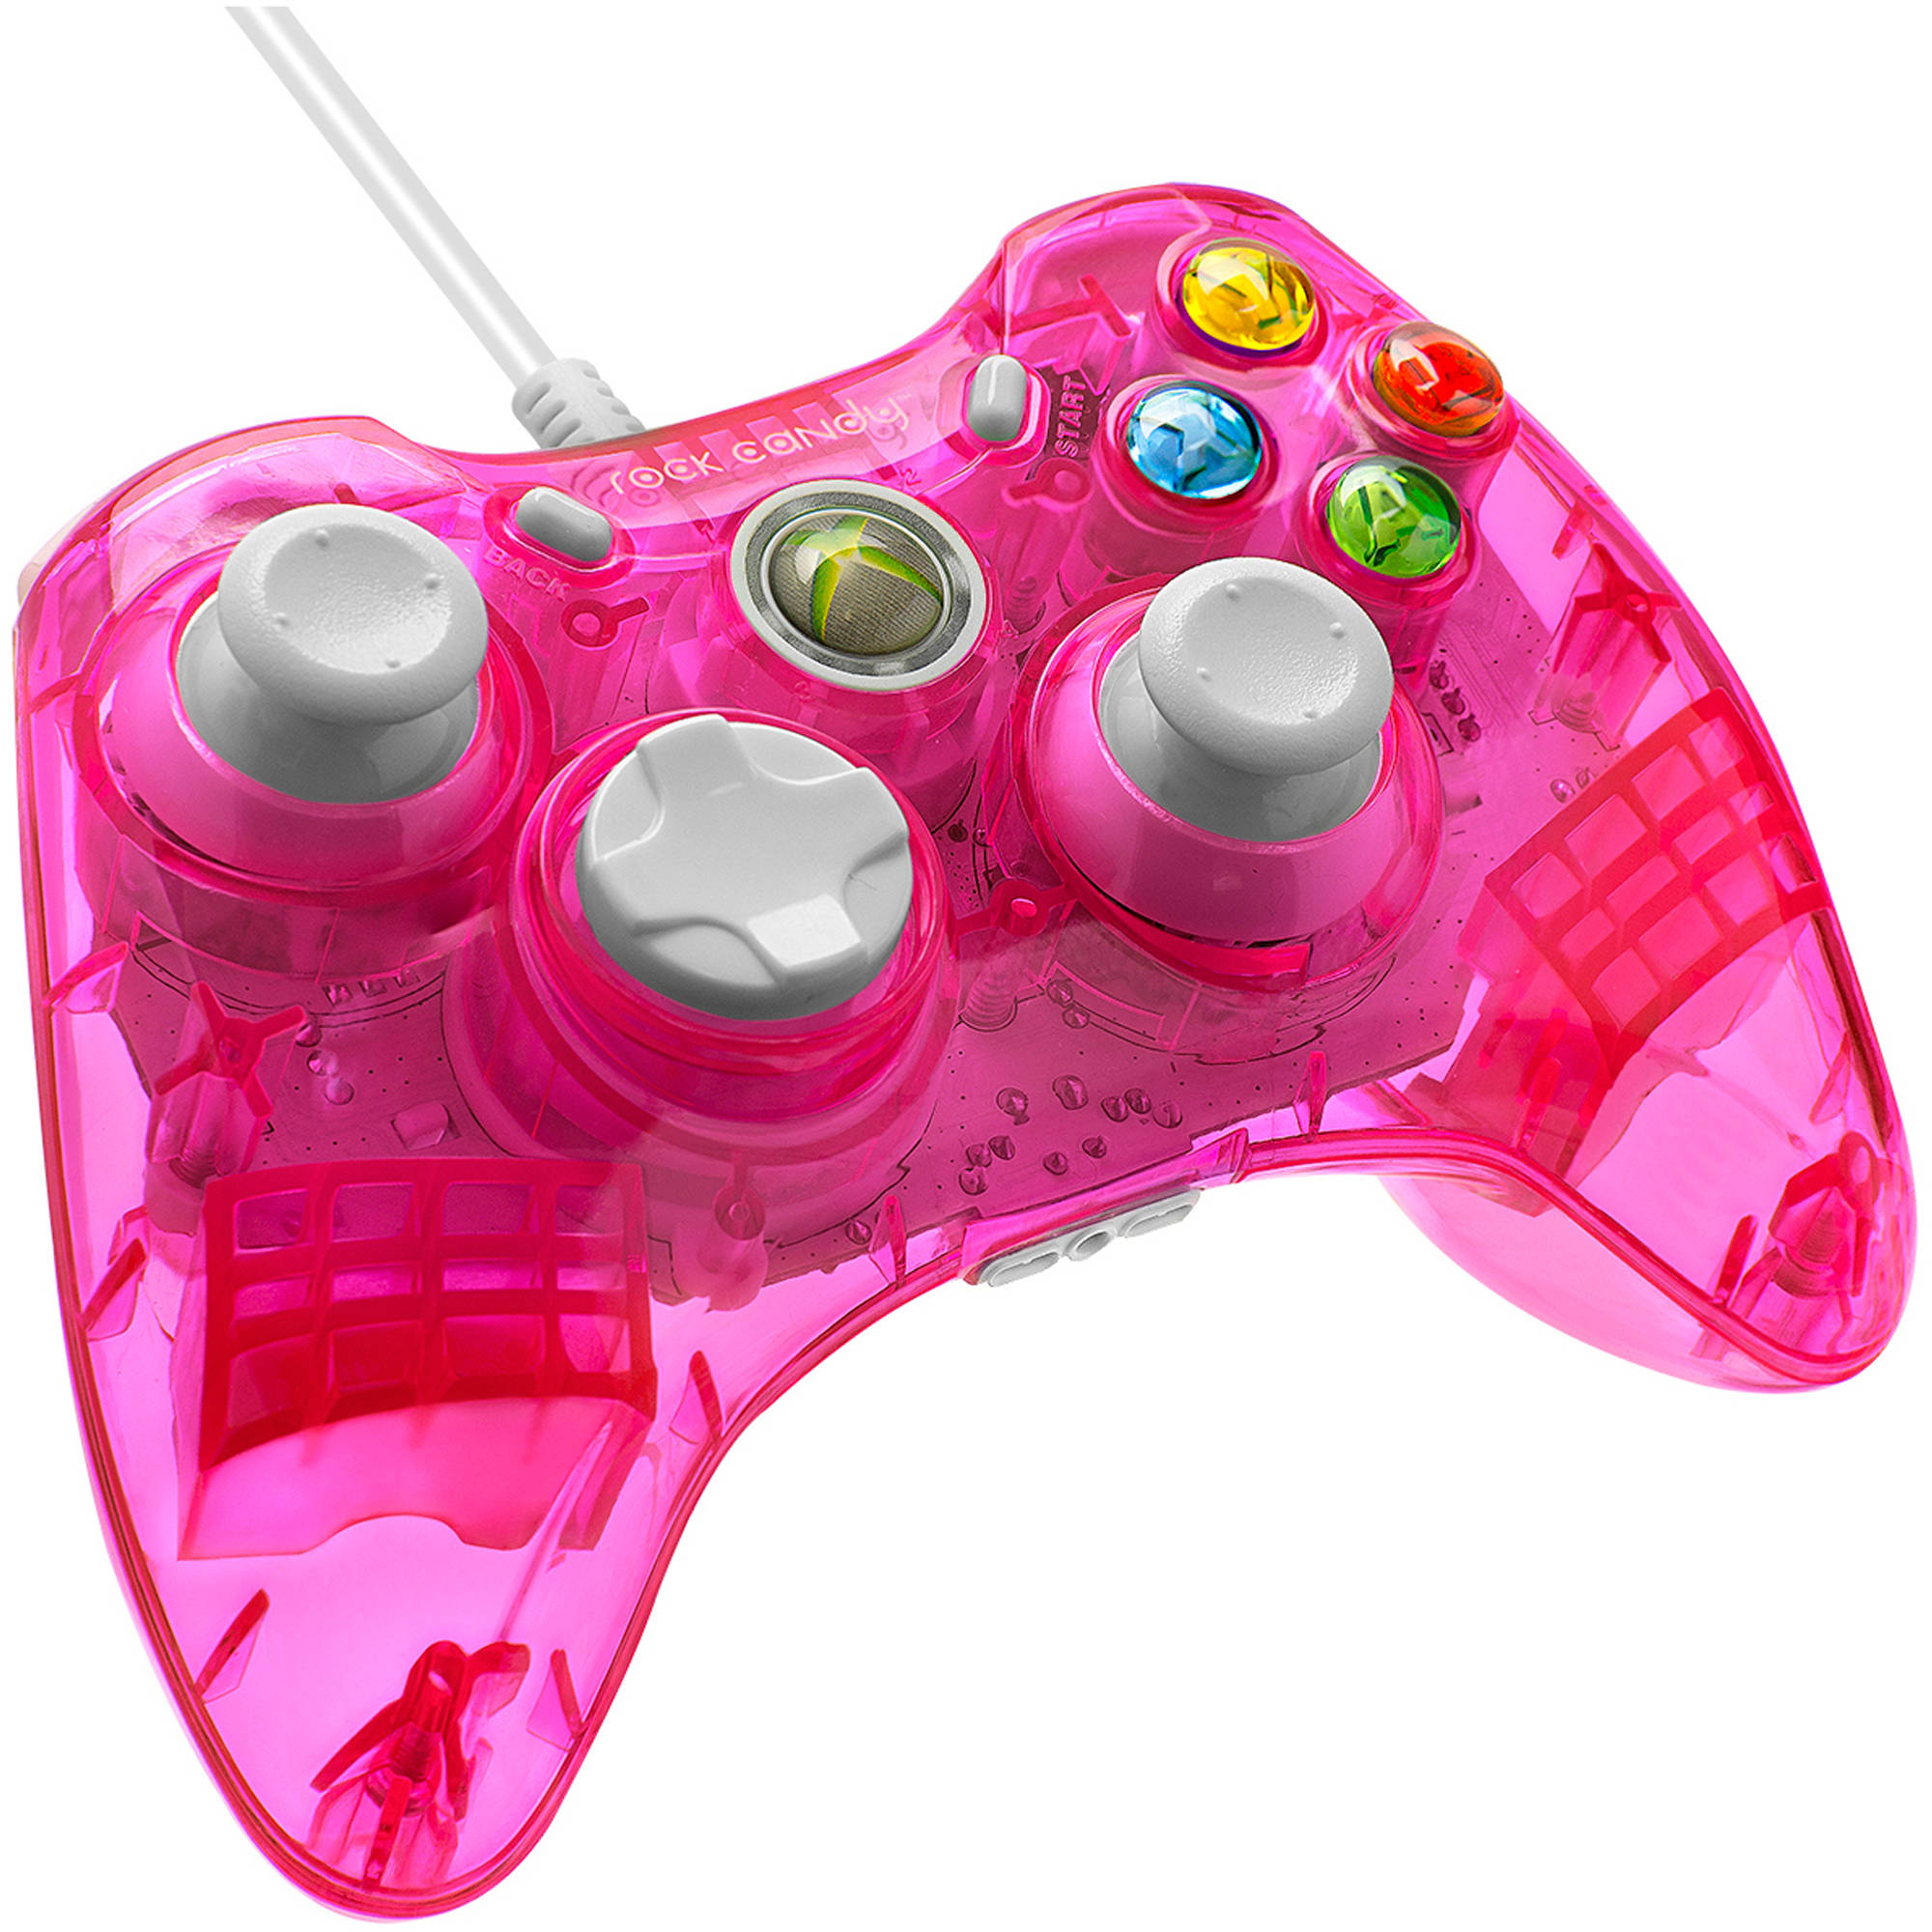 PDP Rock Candy Wired Controller for Xbox 360, Pink Palooza